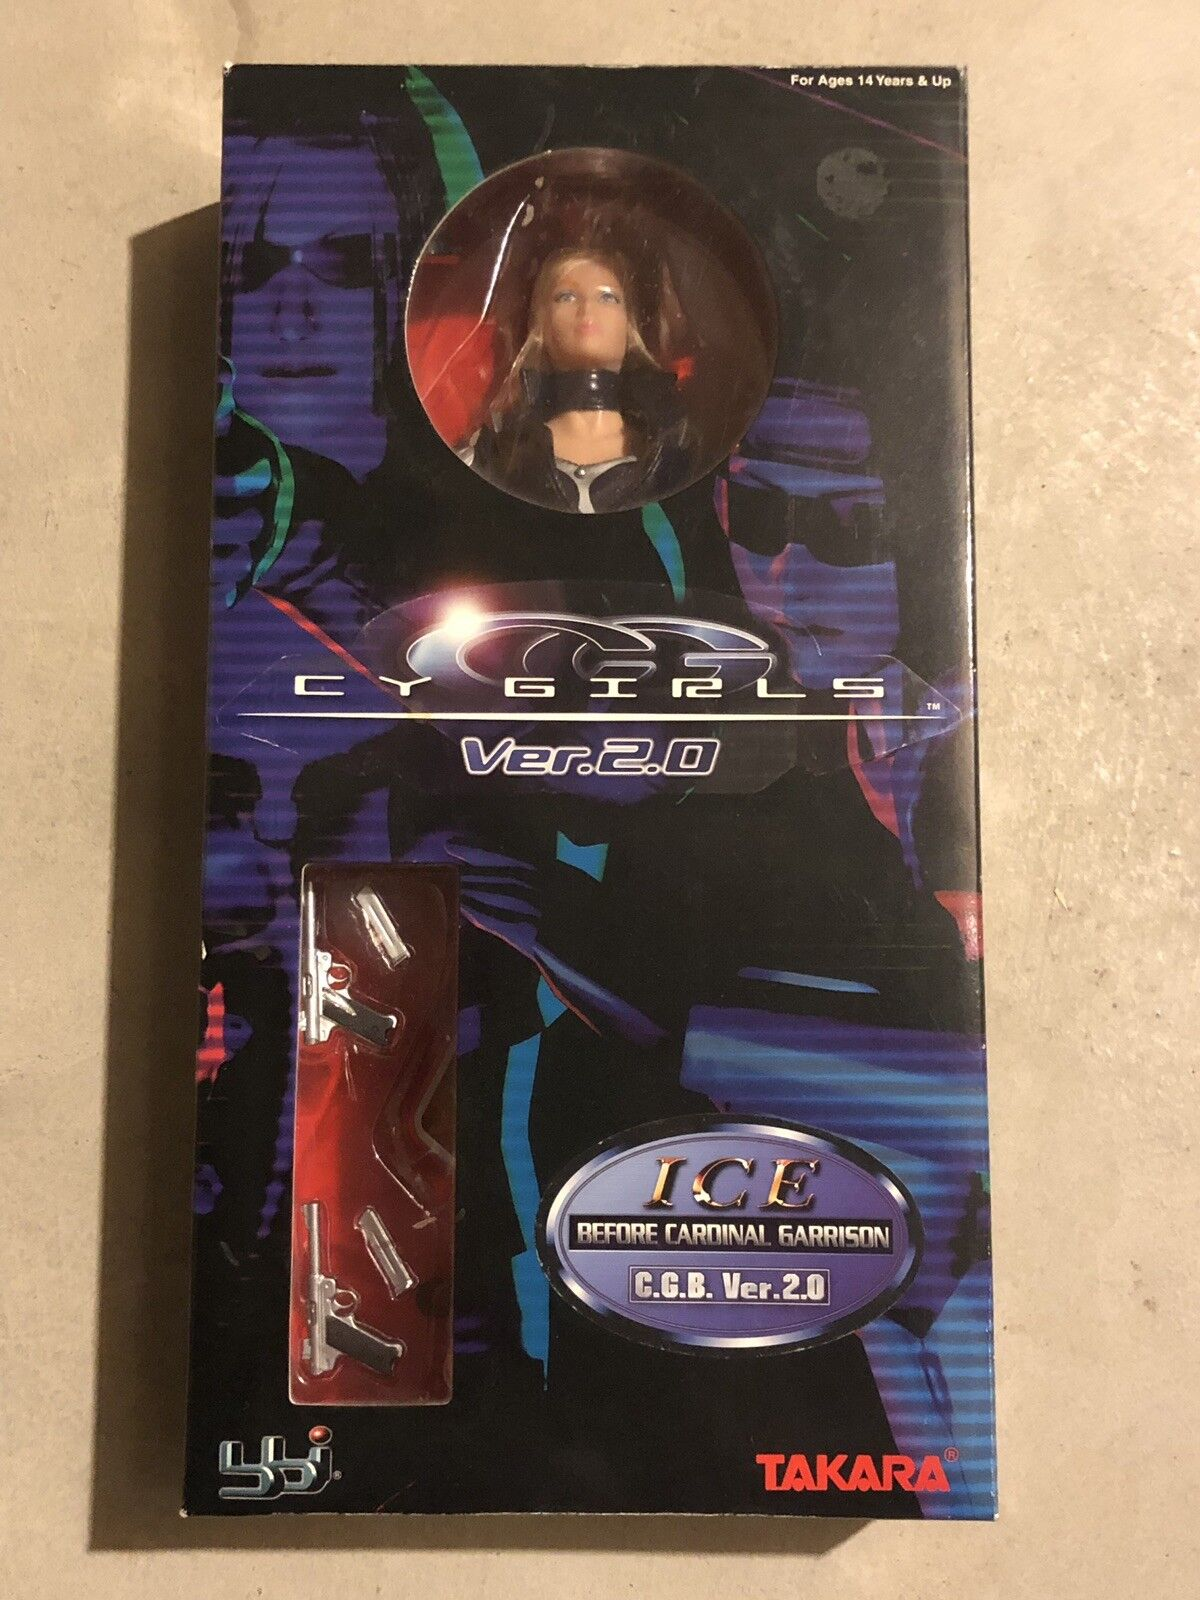 2003 BBI Takara CY Cool Girls Girls Girls Ver.2.0 ICE 12  Figure New 9013e2